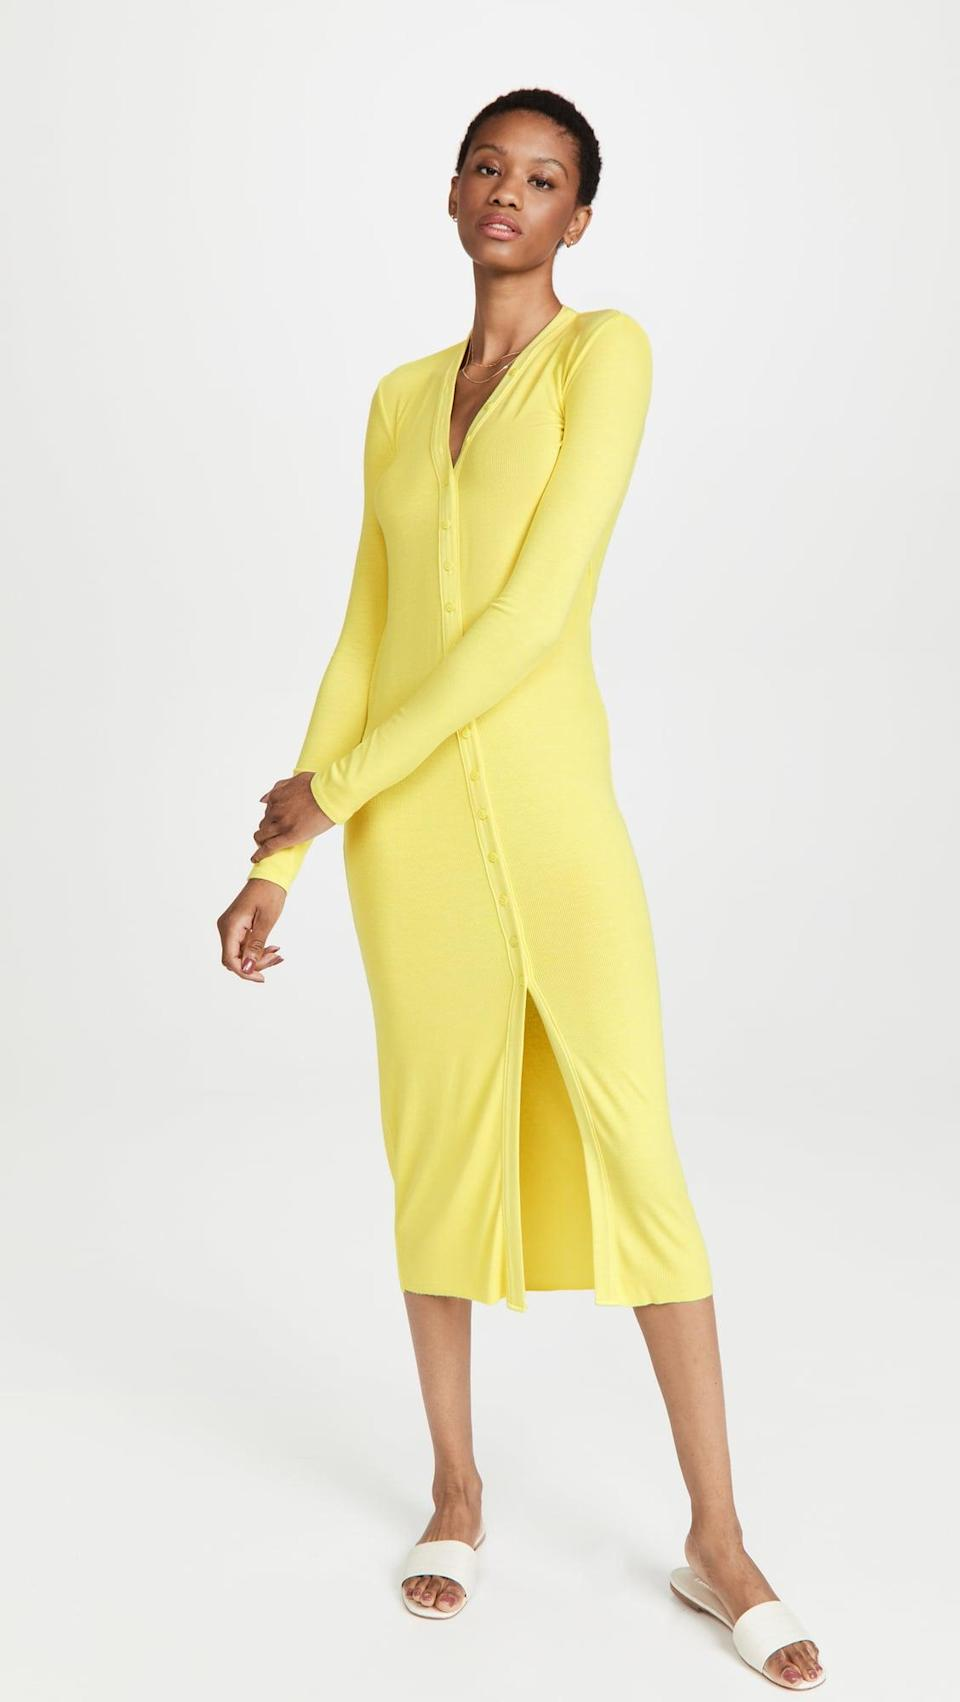 <p>Be bold and get the vibrant <span>Enza Costa Rib Cardigan Midi Dress</span> ($275) to brighten up your fall wardrobe. The soft and cozy material makes it one you'll never want to take off.</p>